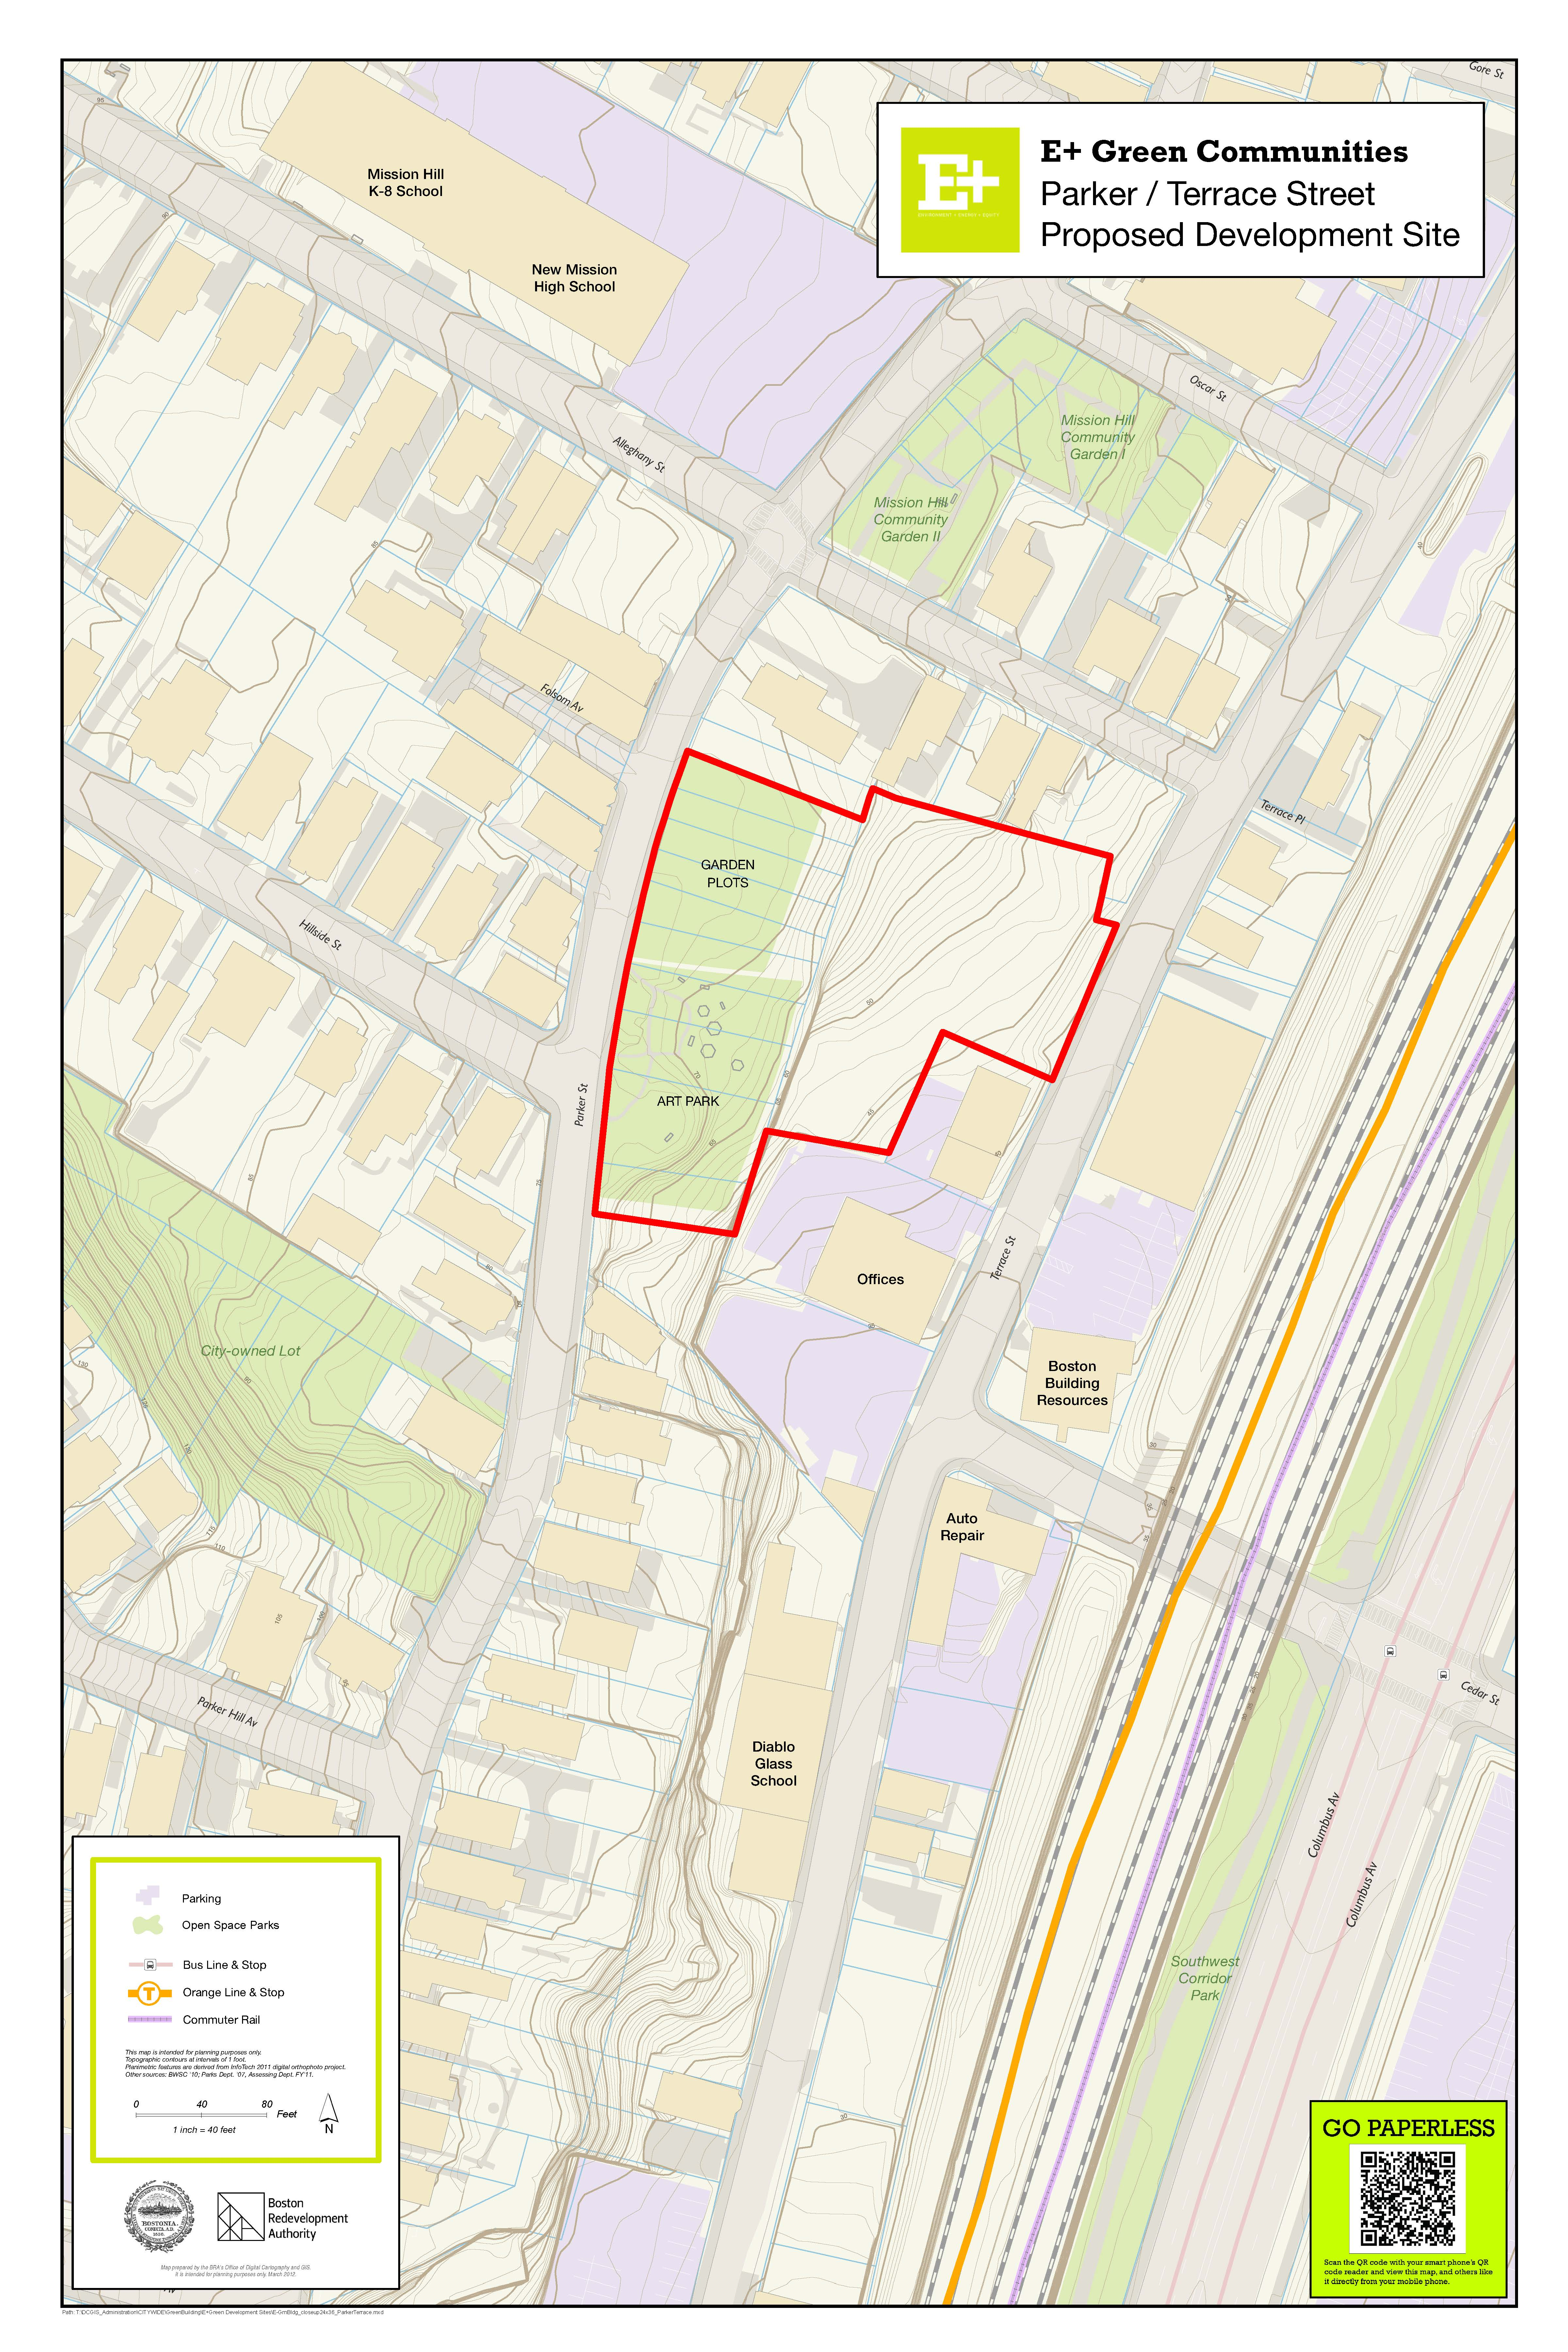 Mission Hill: RFP – Issued on March 18, 2013 and closed on June 2